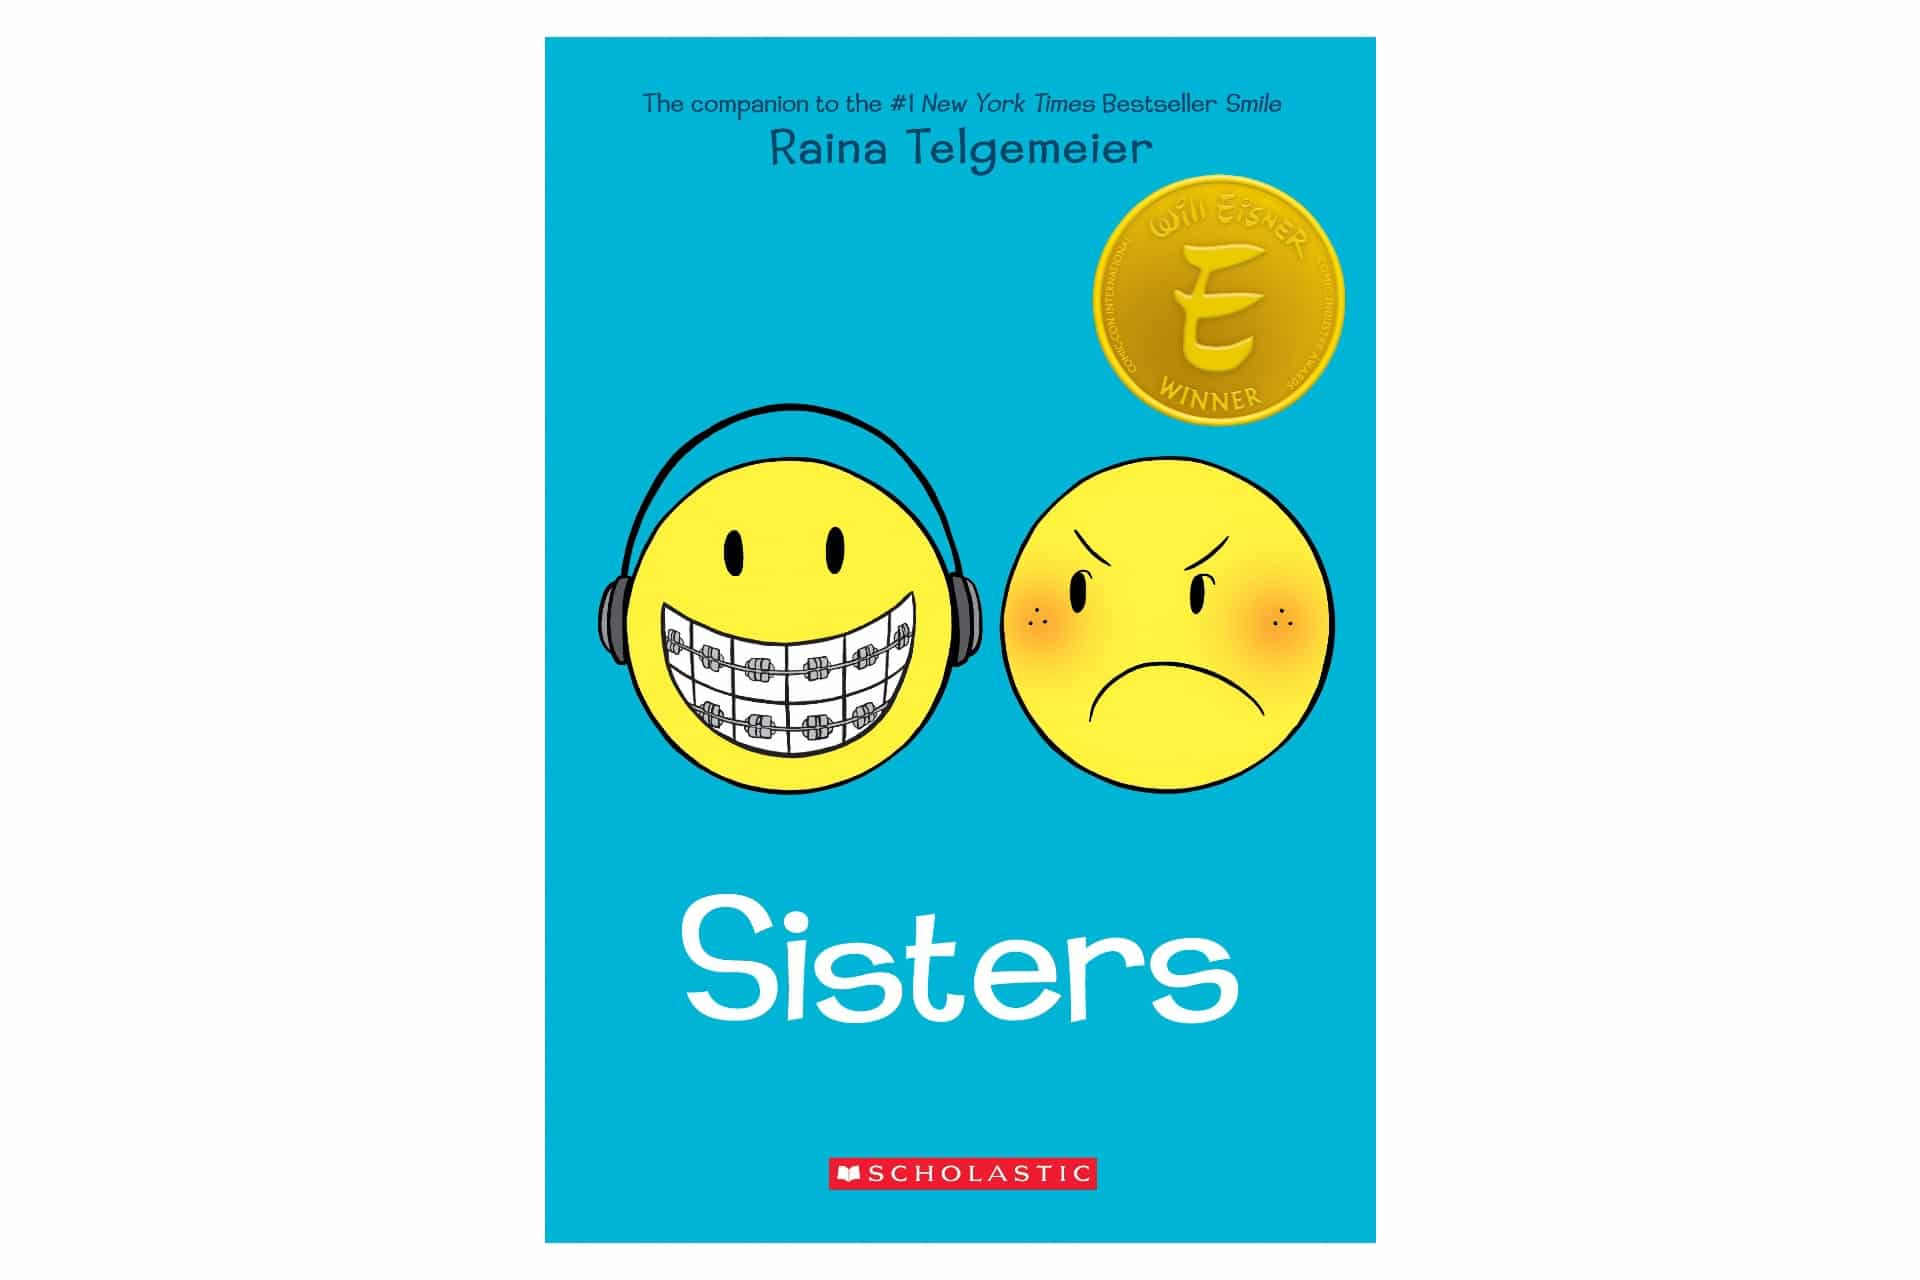 blue book cover with two smiley faces depicting different emotions